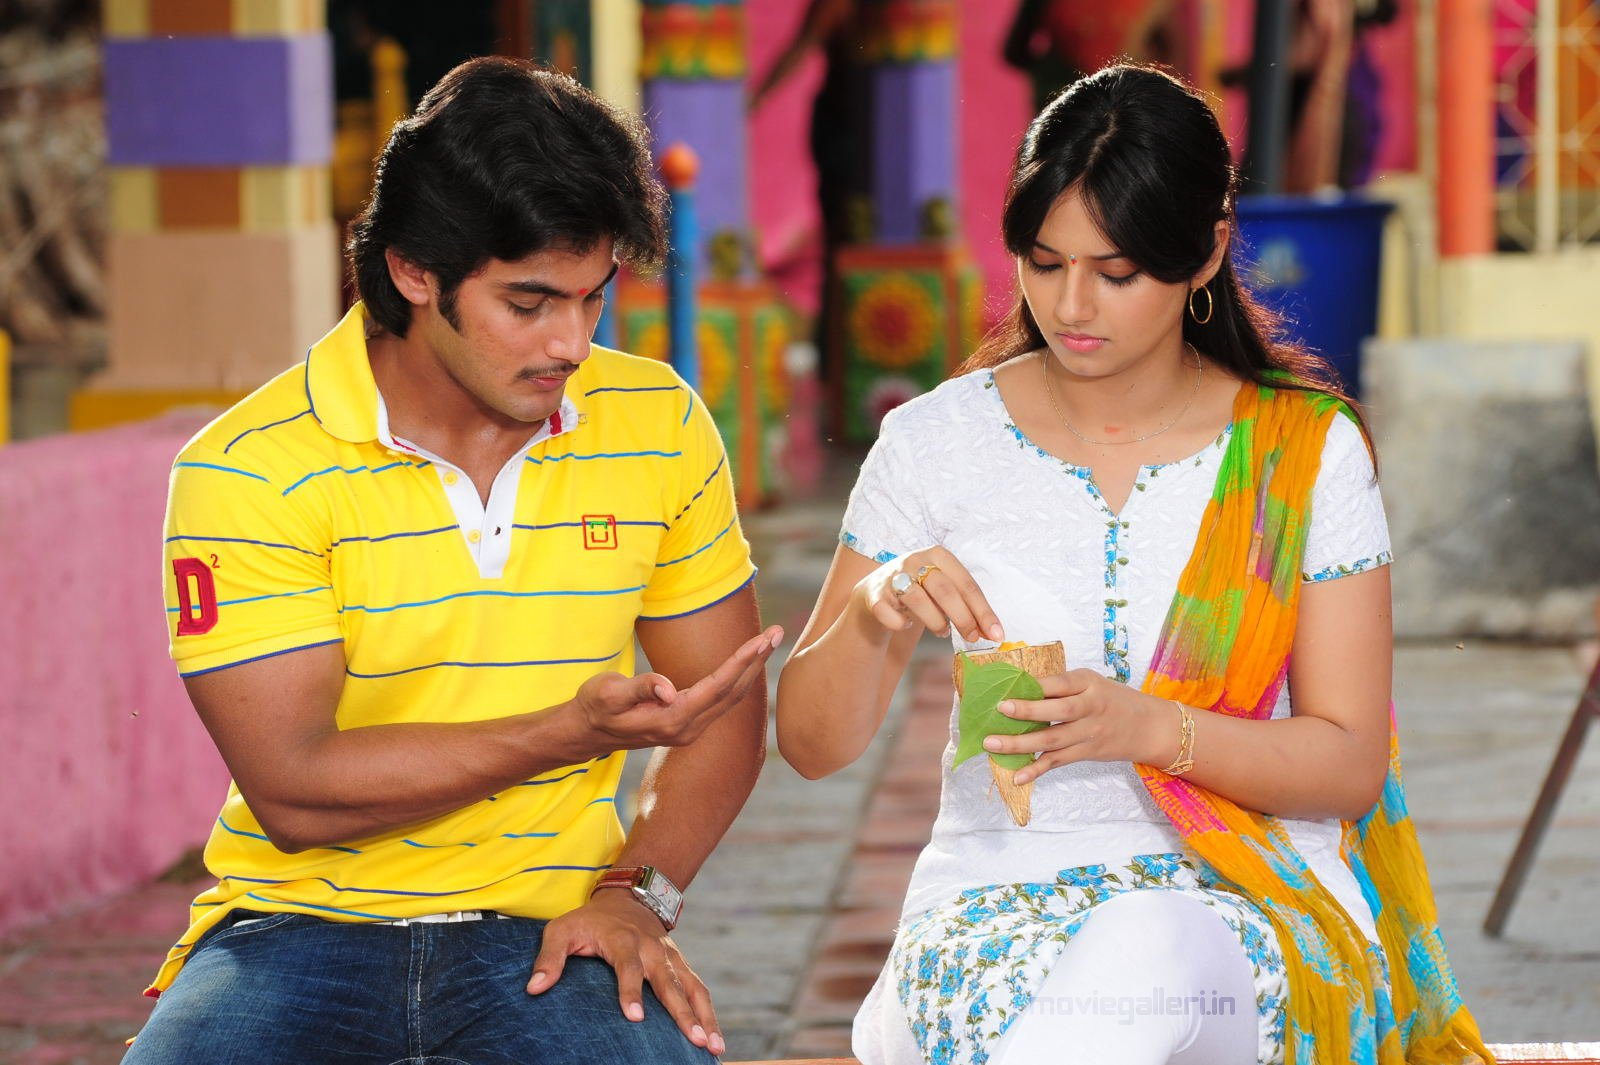 http://2.bp.blogspot.com/_6Vr9b9OoZno/TNzdAeFPGTI/AAAAAAAADmM/faxwnSMKwc0/s1600/prema_kavali_movie_stills_wallpapers_01.JPG